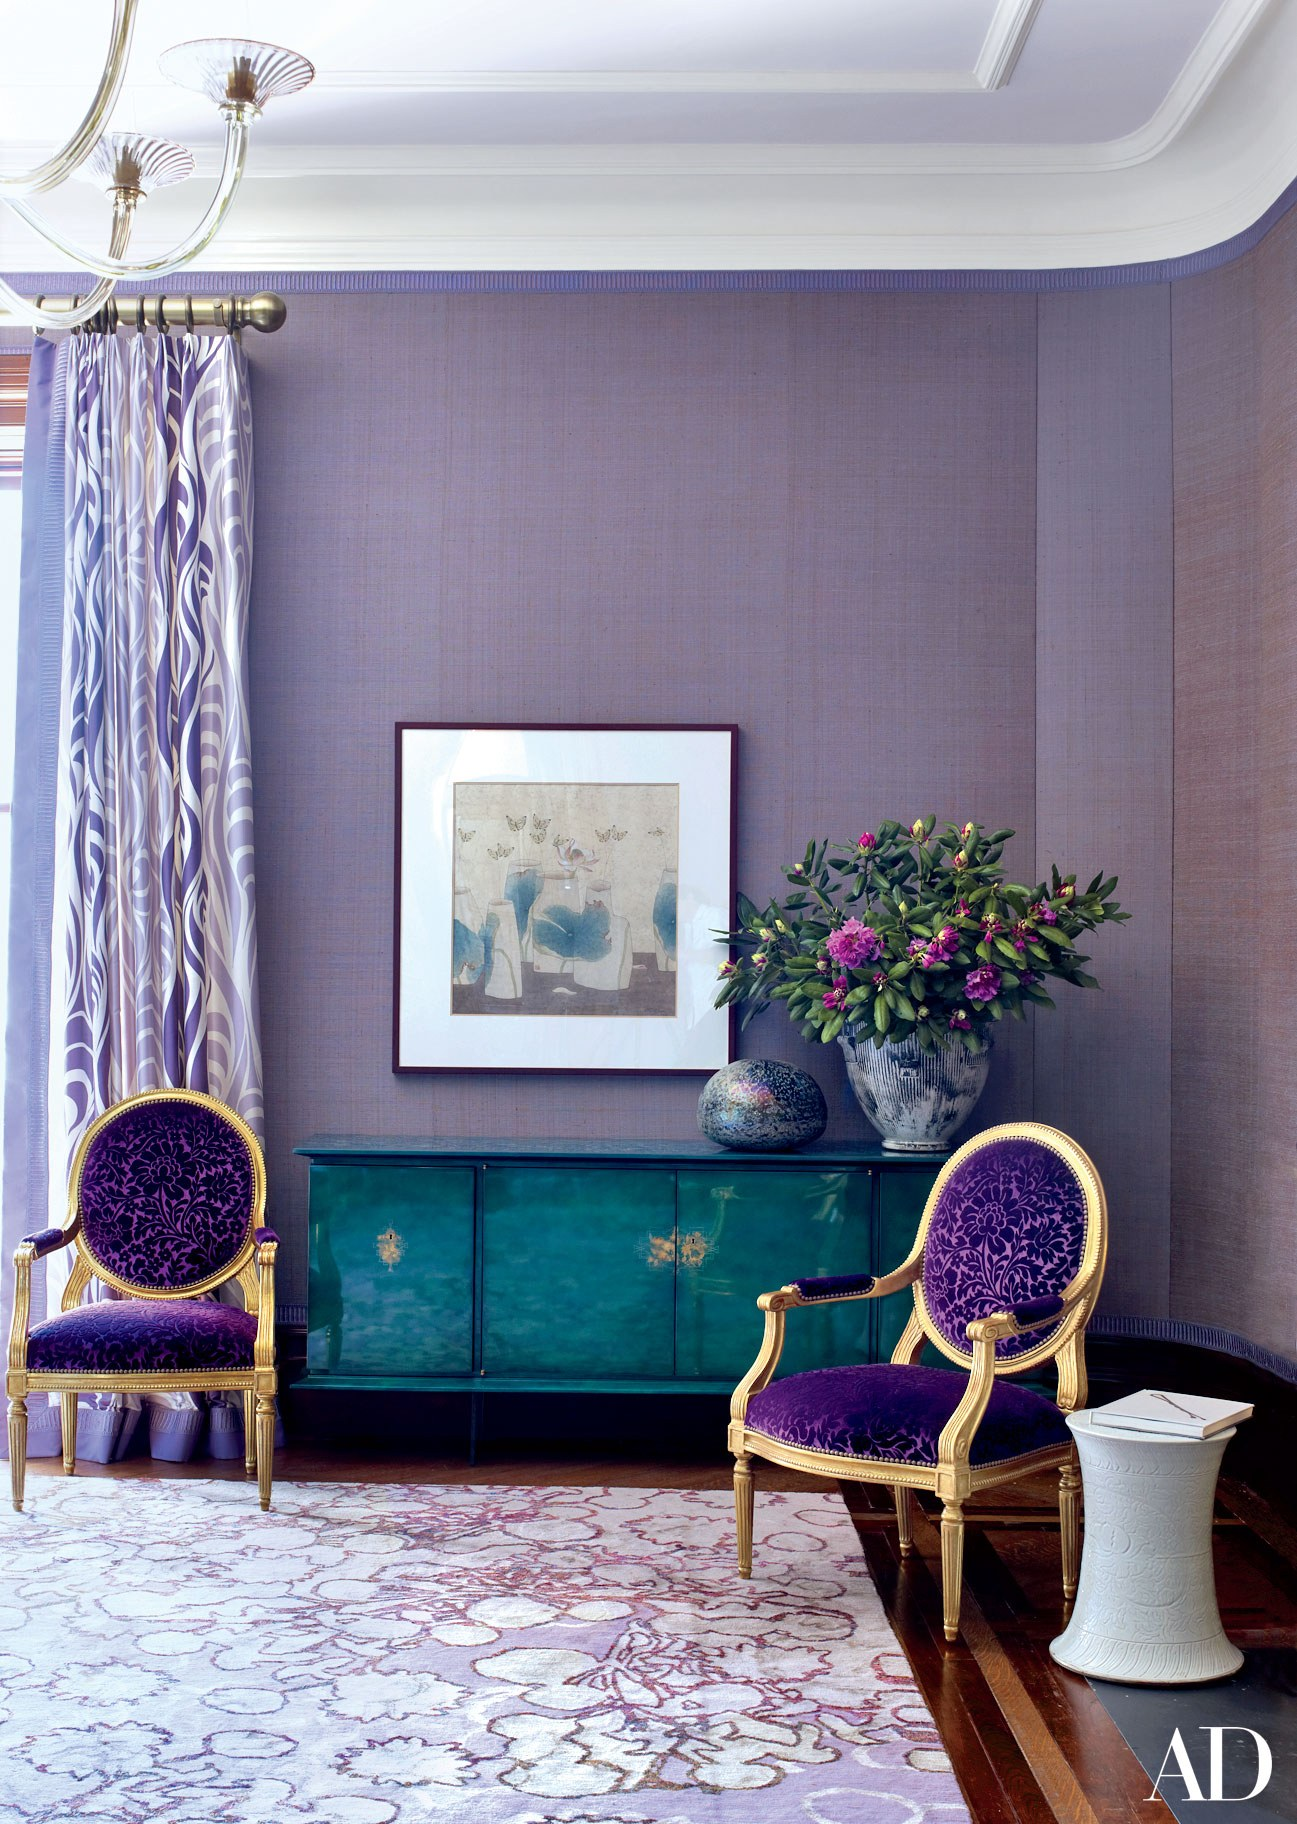 Interior Design Trends 2018 - Color of the Year 2018 - Jamie Drake - Drake Anderson - Photo by William Waldron via AD - decorating with ultra violet - home decor ideas color of the year - purple walls - purple decorating ideas